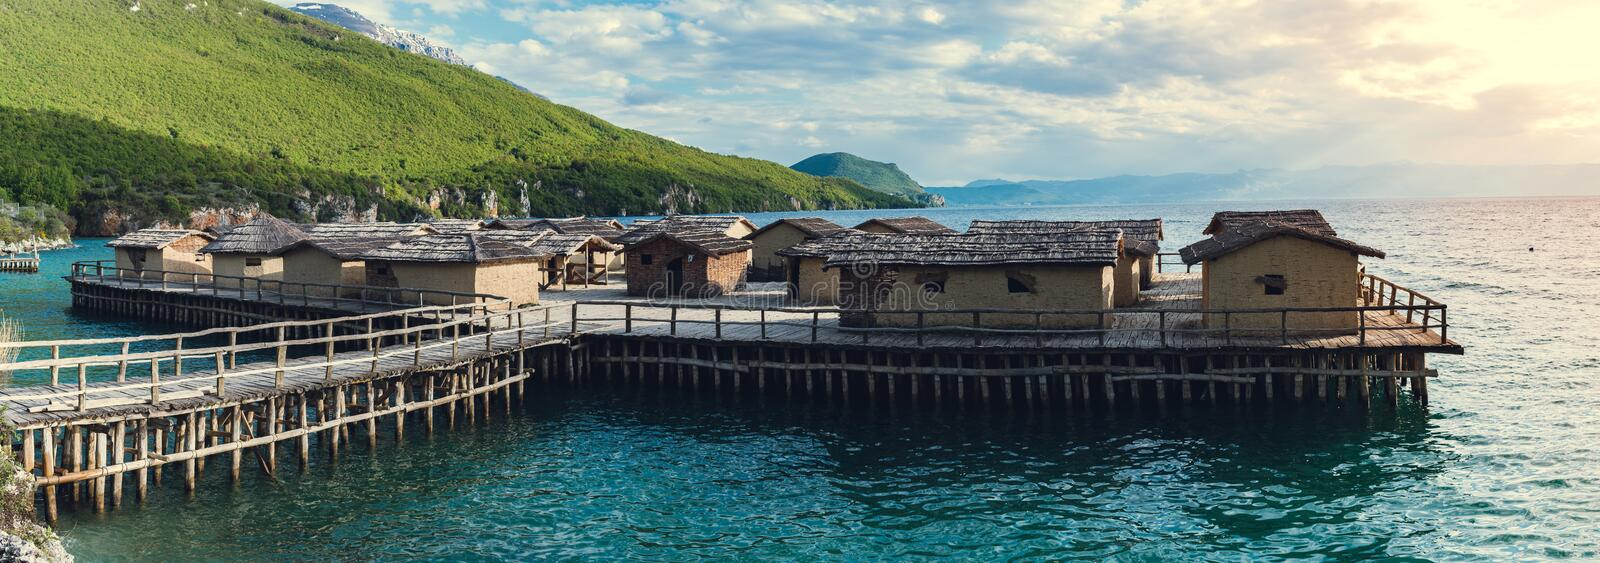 Museum on the water, fisherman village  - landscape iconic view. Panorama stock photos